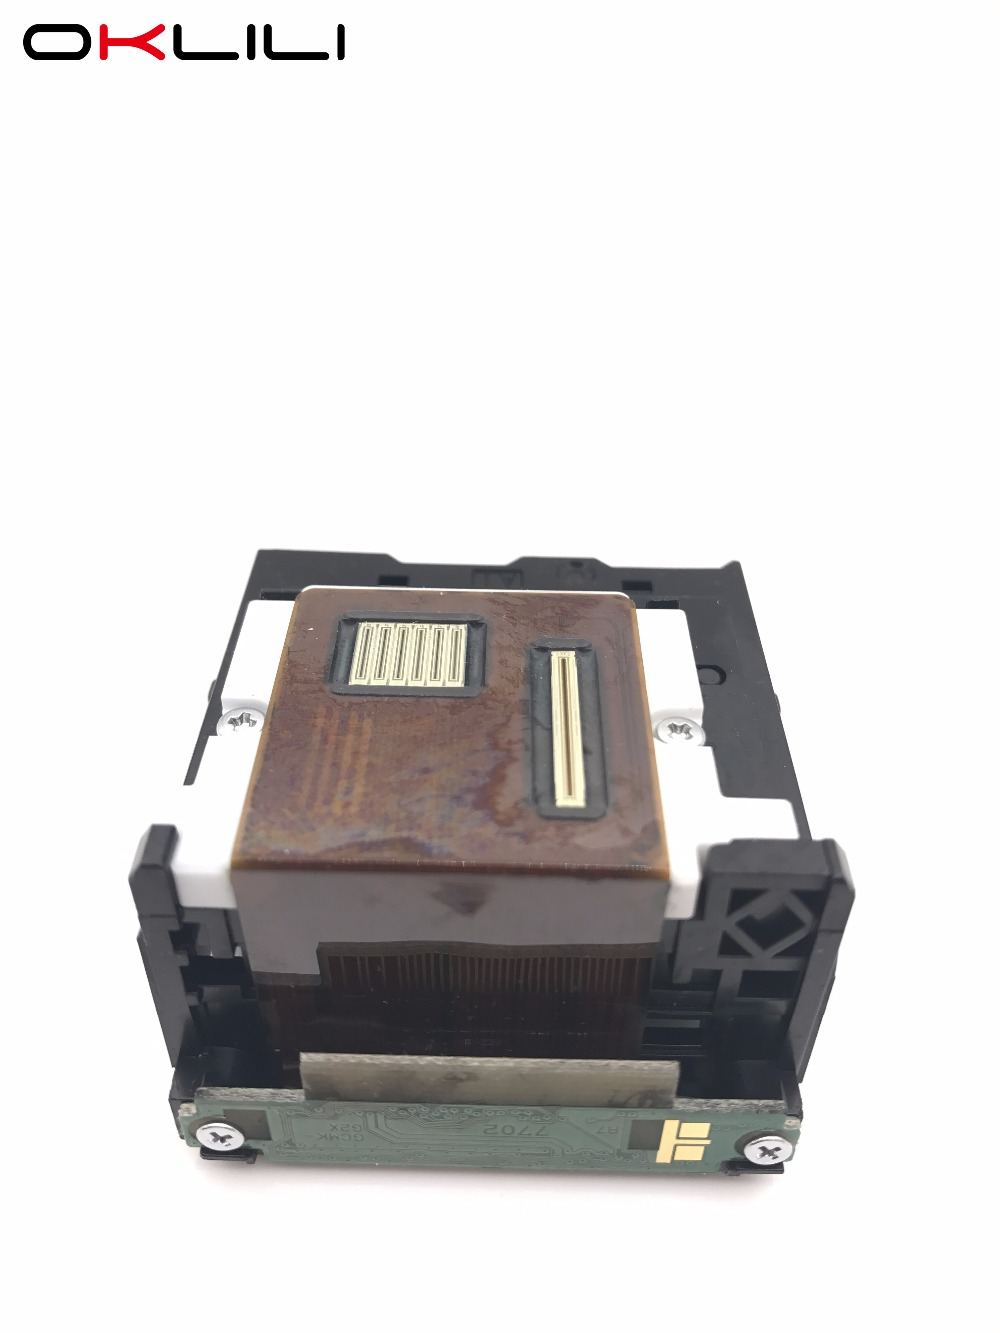 OKLILI ORIGINAL QY6-0068 QY6-0068-000 Printhead Print Head Printer Head for Canon PIXMA iP100 new original print head qy6 0061 00 printhead for canon ip4300 ip5200 ip5200r mp600 mp600r mp800 mp800r mp830 plotter